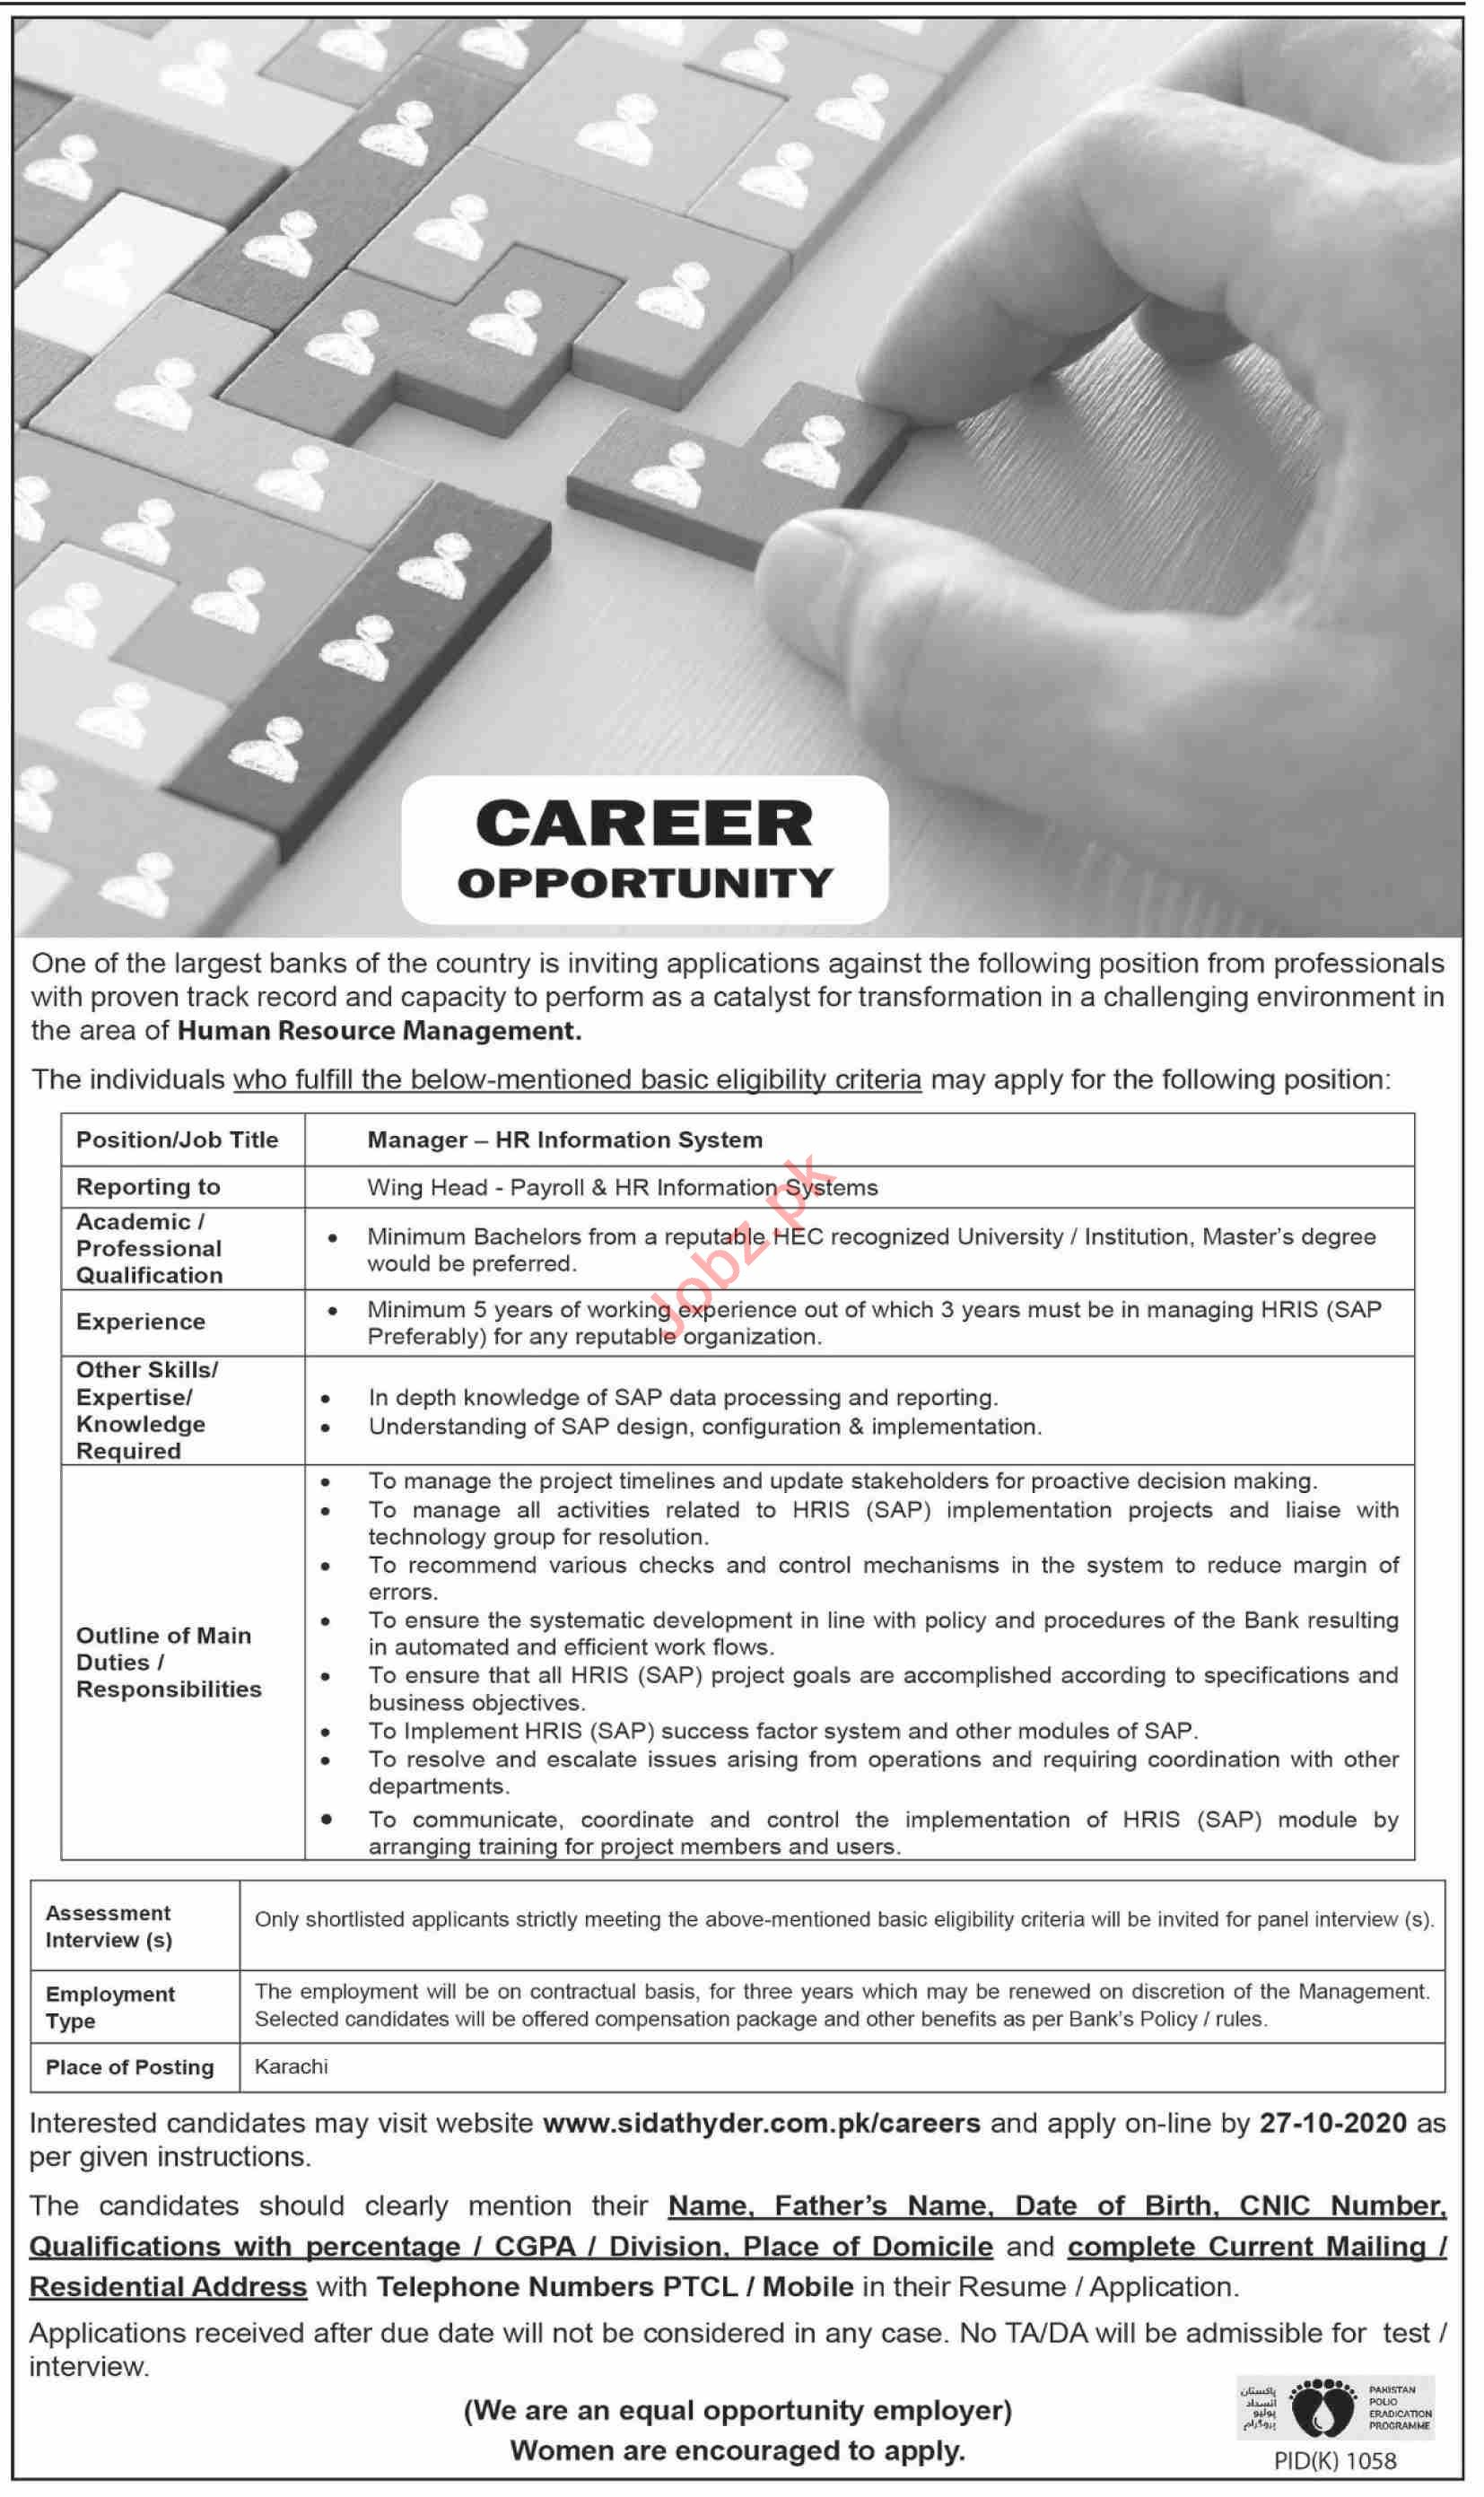 Manager HR Information System & Wing Head Jobs 2020